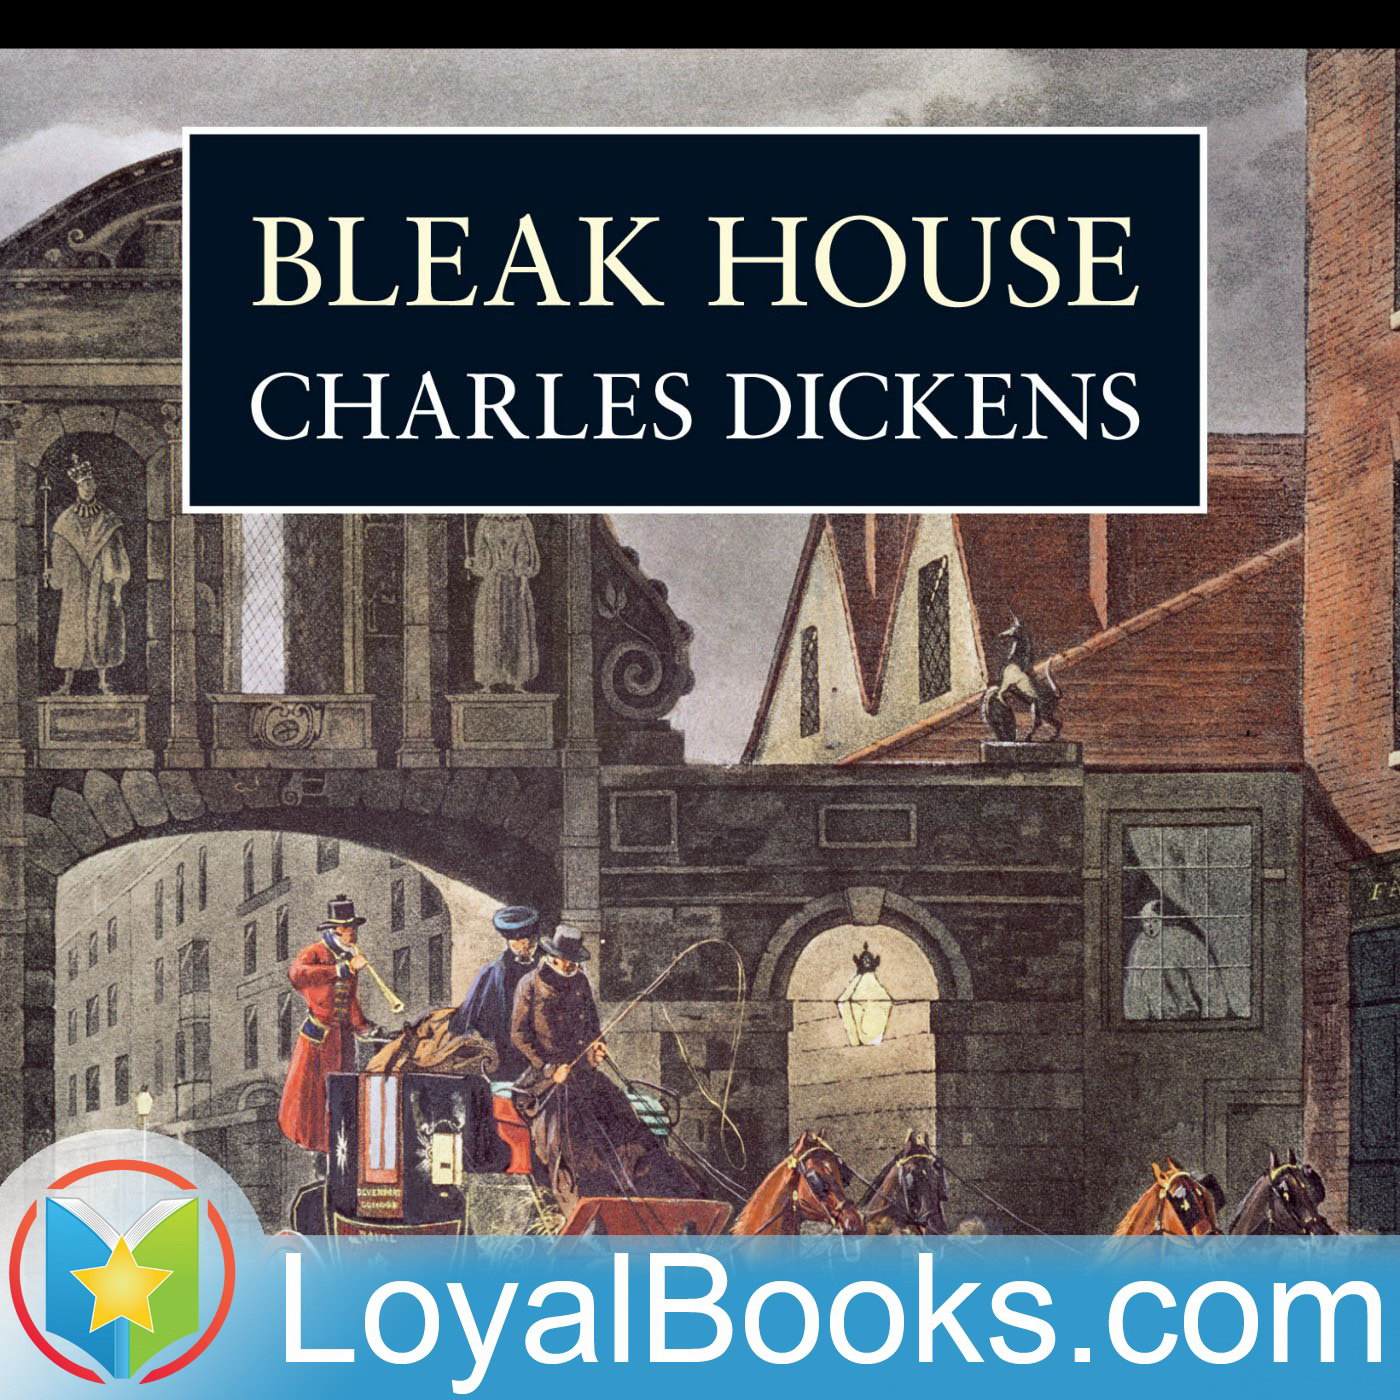 <![CDATA[Bleak House by Charles Dickens]]>